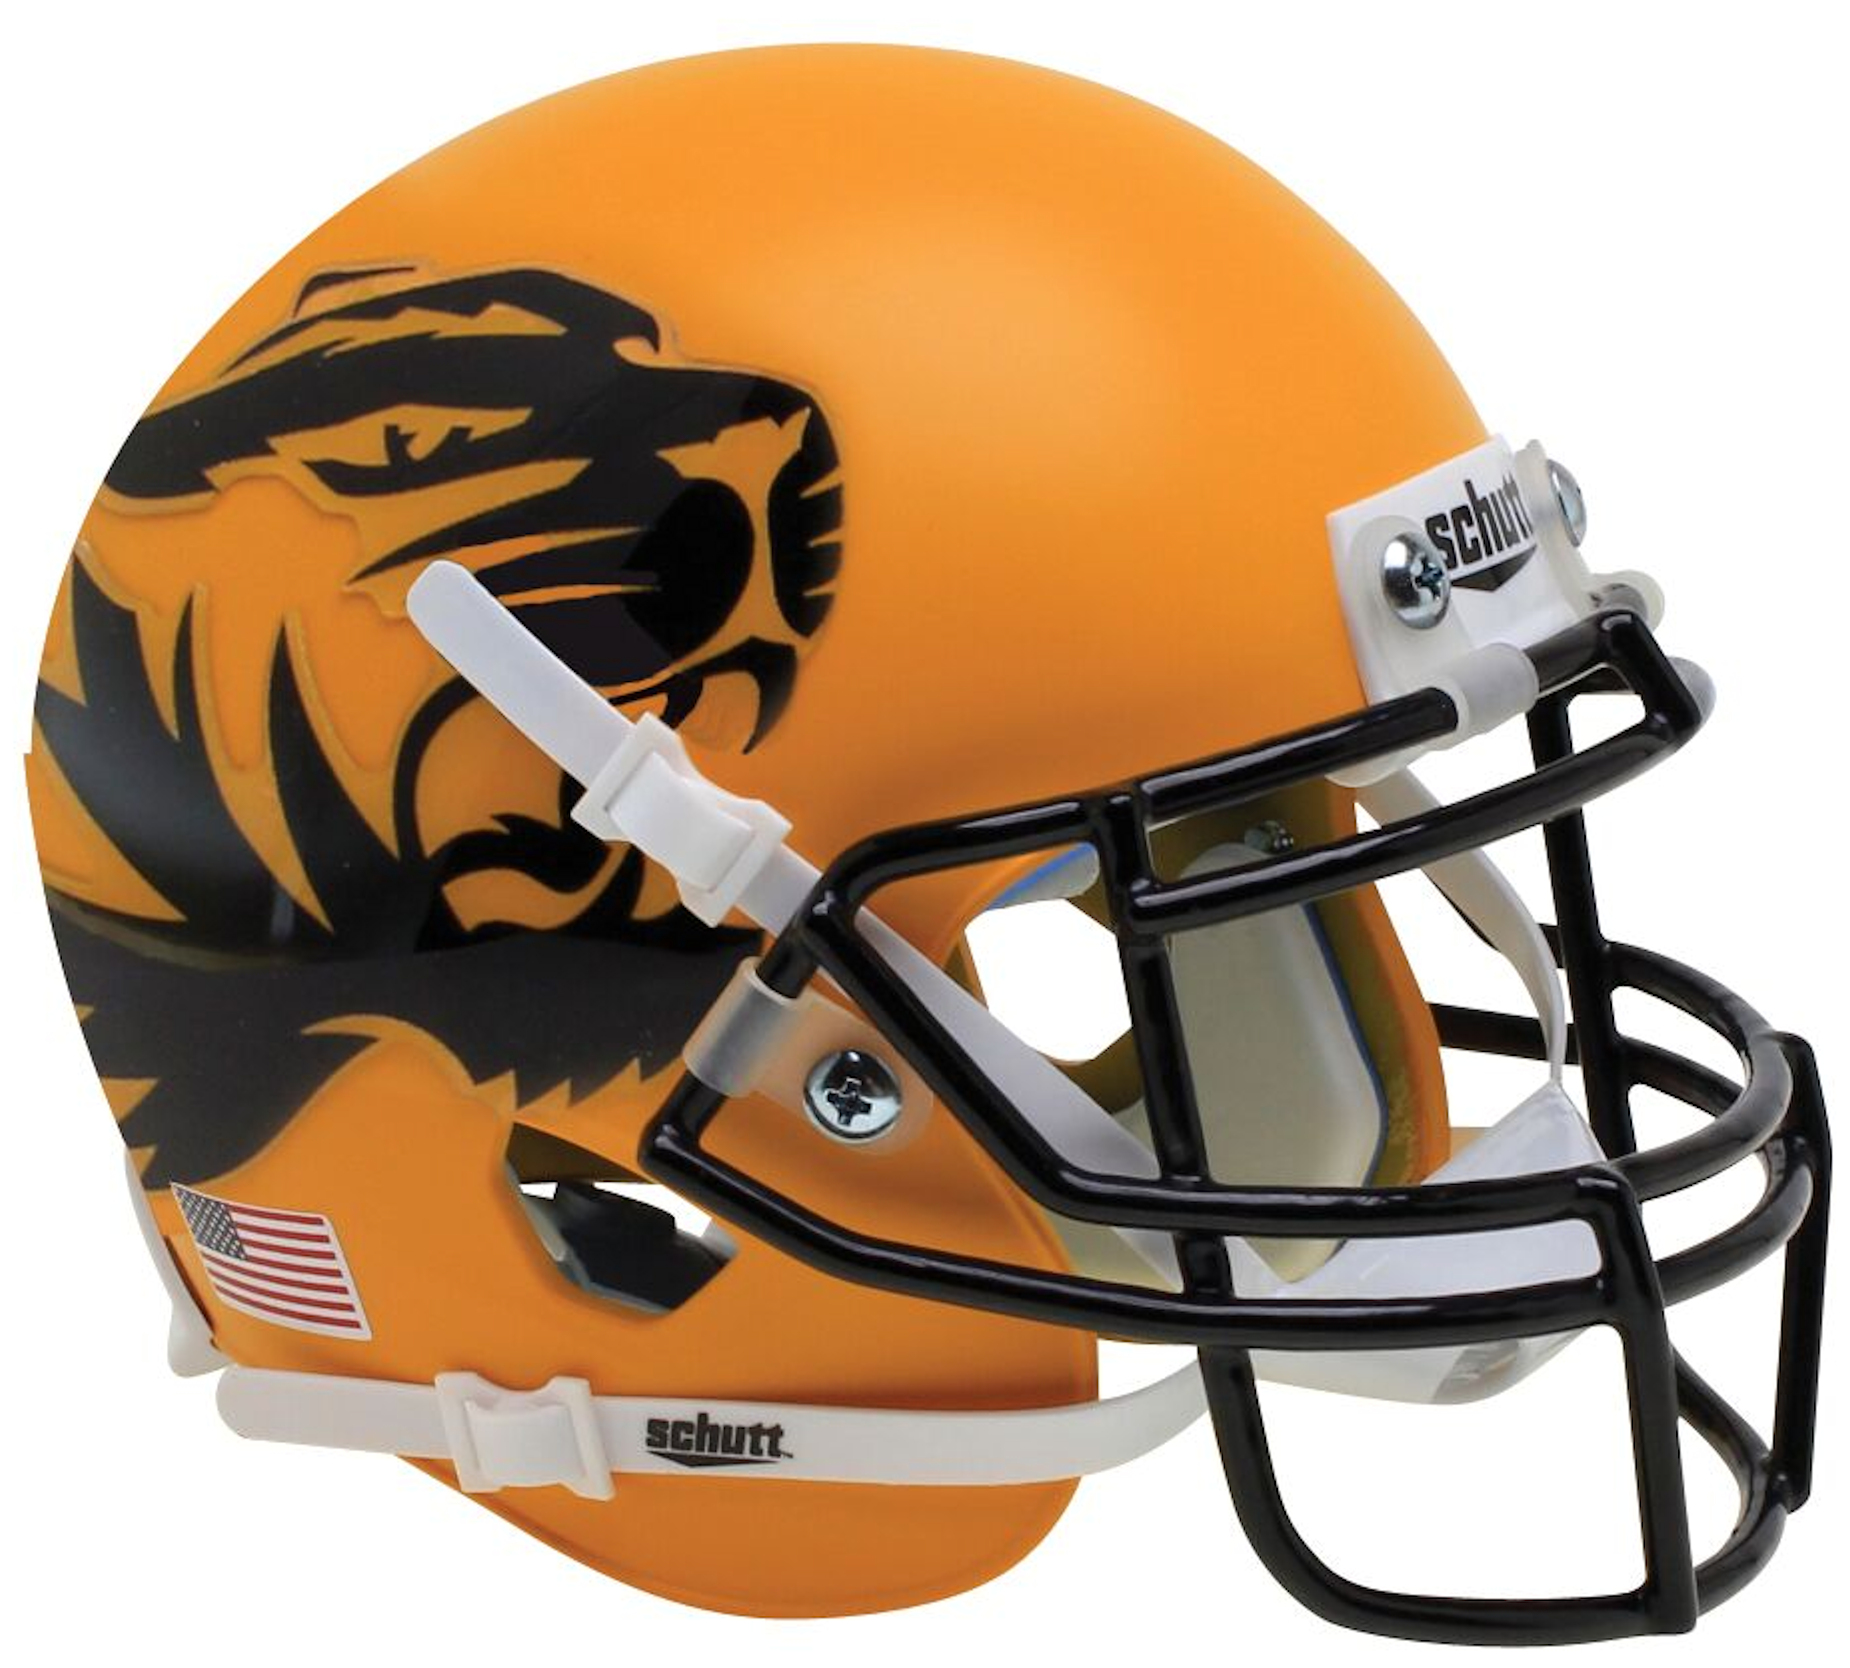 Missouri Tigers Miniature Football Helmet Desk Caddy <B>Yellow Large Tiger</B>